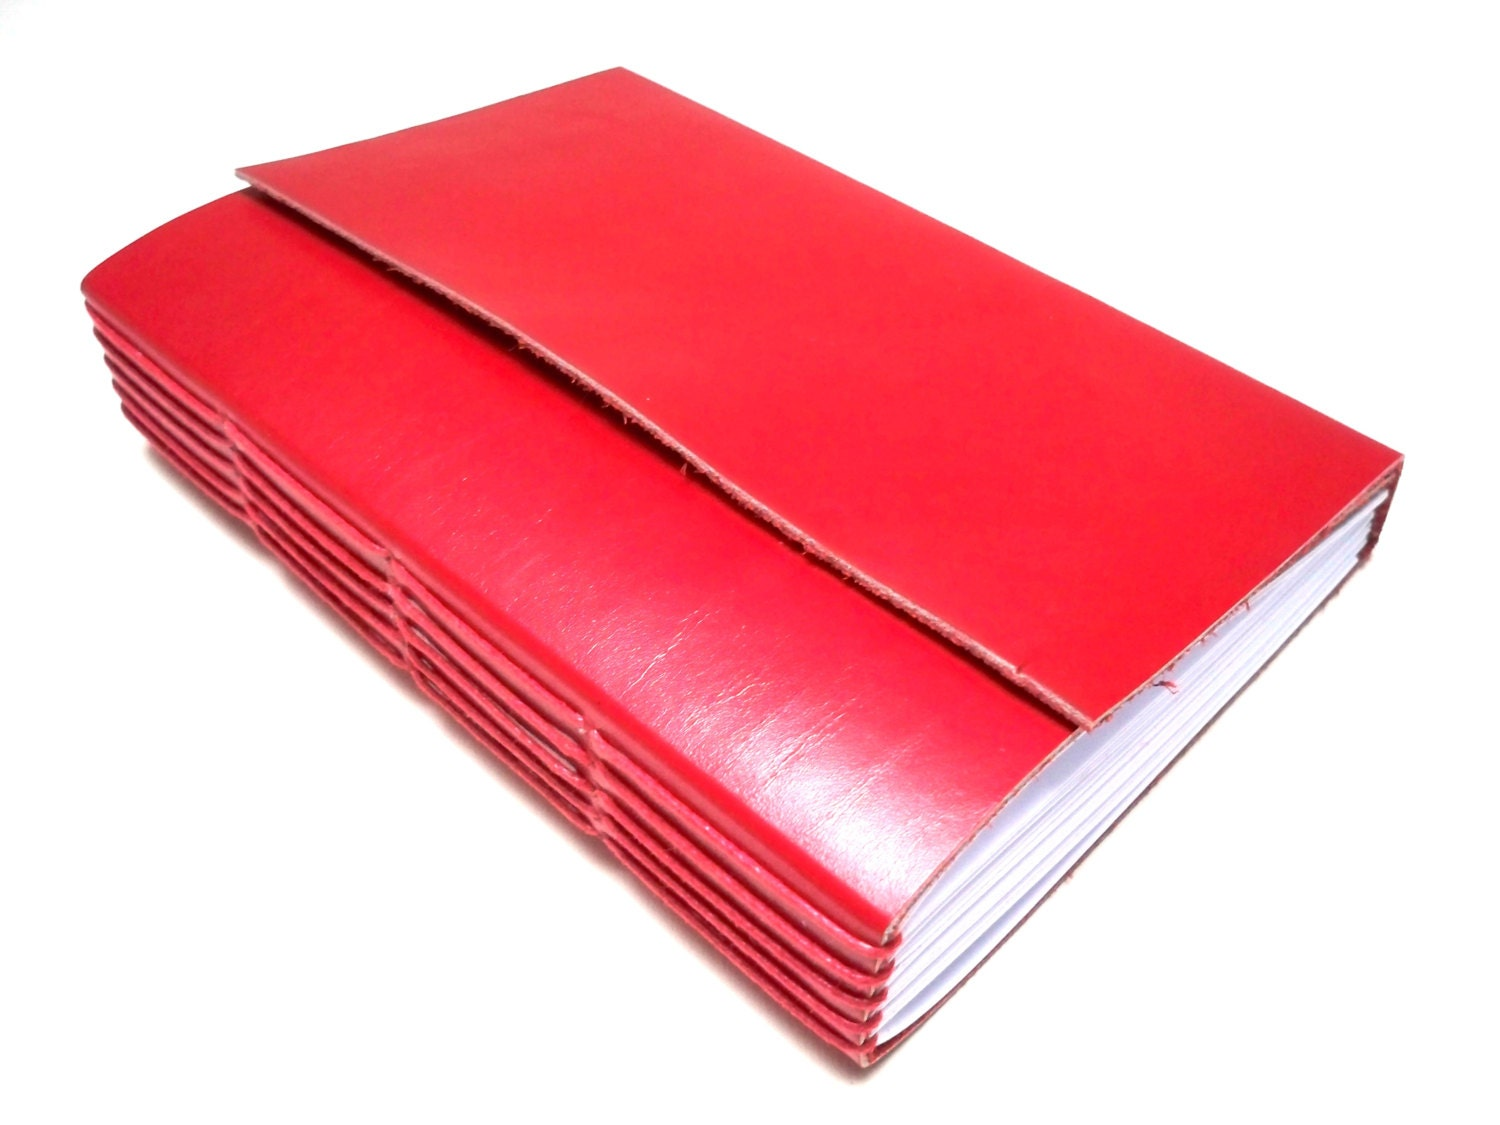 Soft Leather Journal, red leather, blank pages - RilegatoaMano